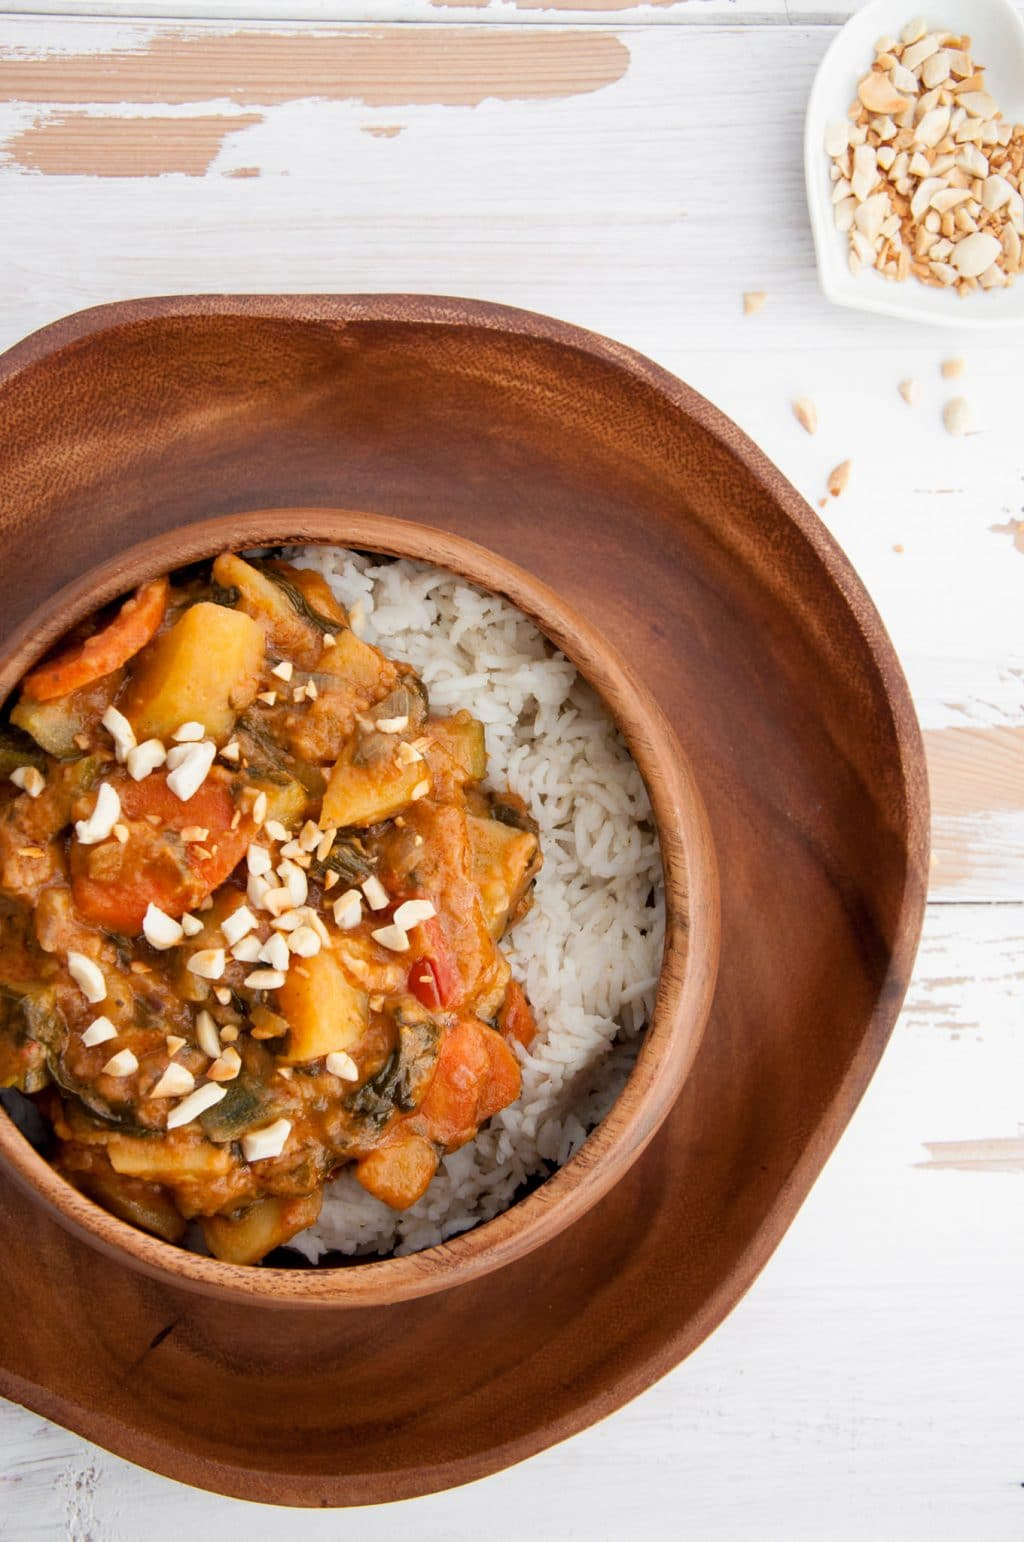 African Peanut Butter Stew in a wood bowl on a wood plate